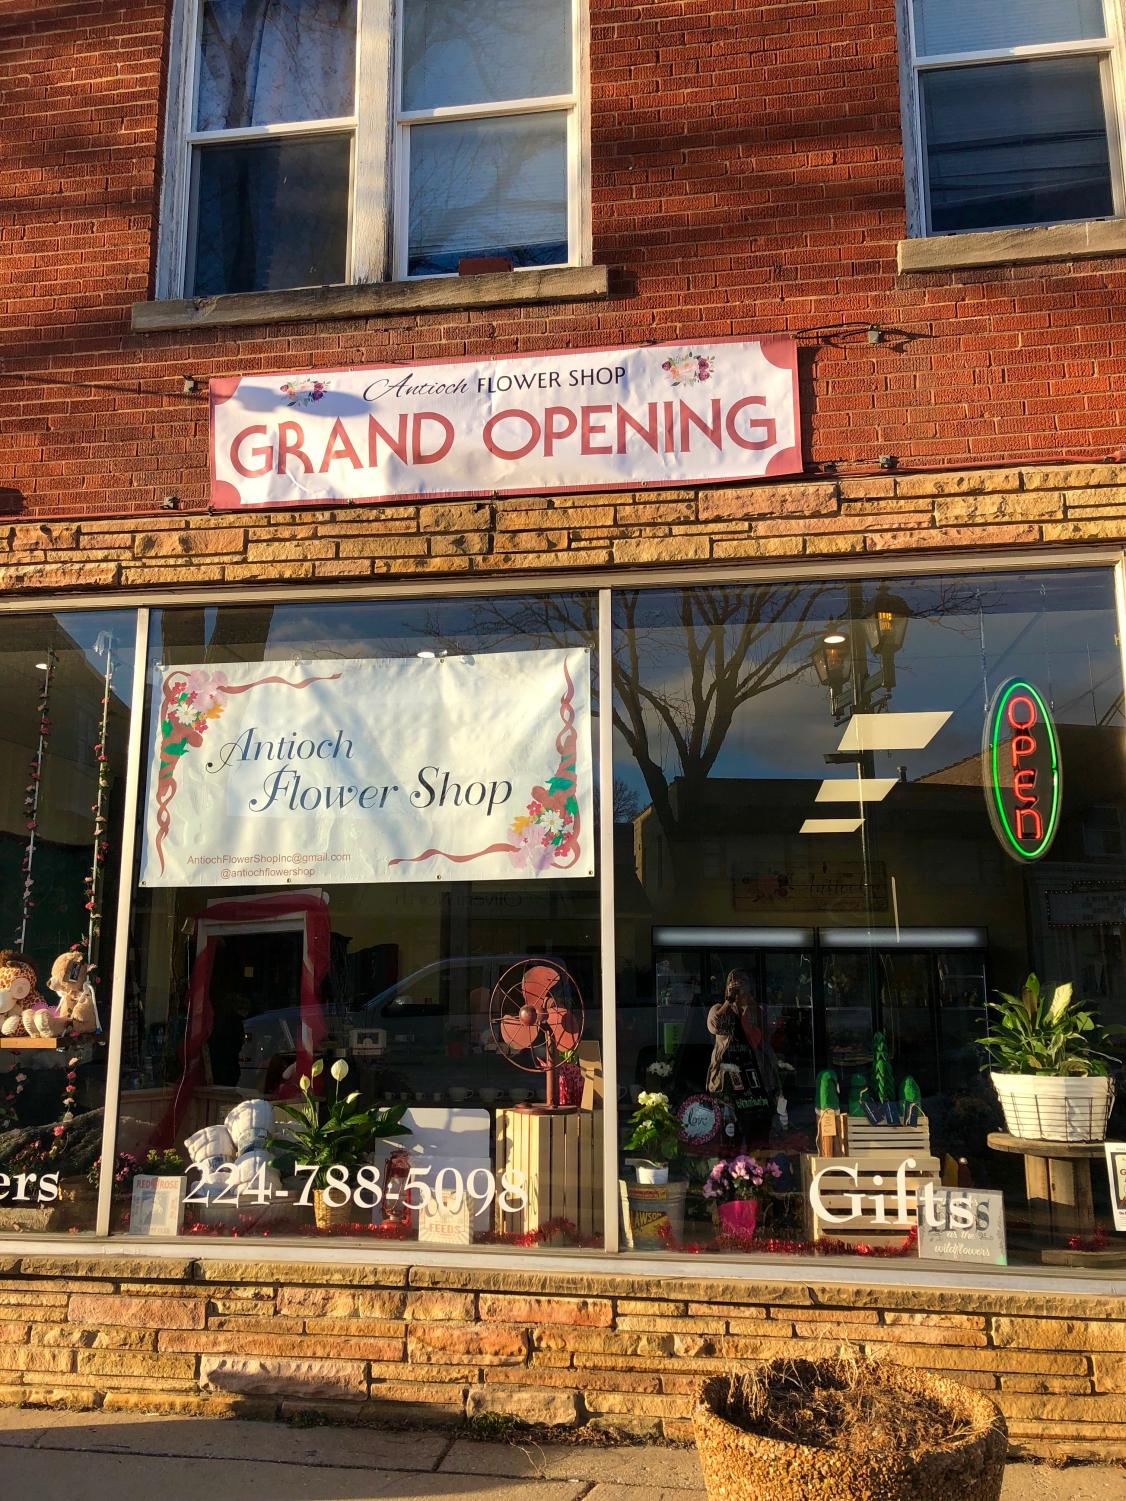 Brand new florist shop has grand opening to welcome customers with open arms.